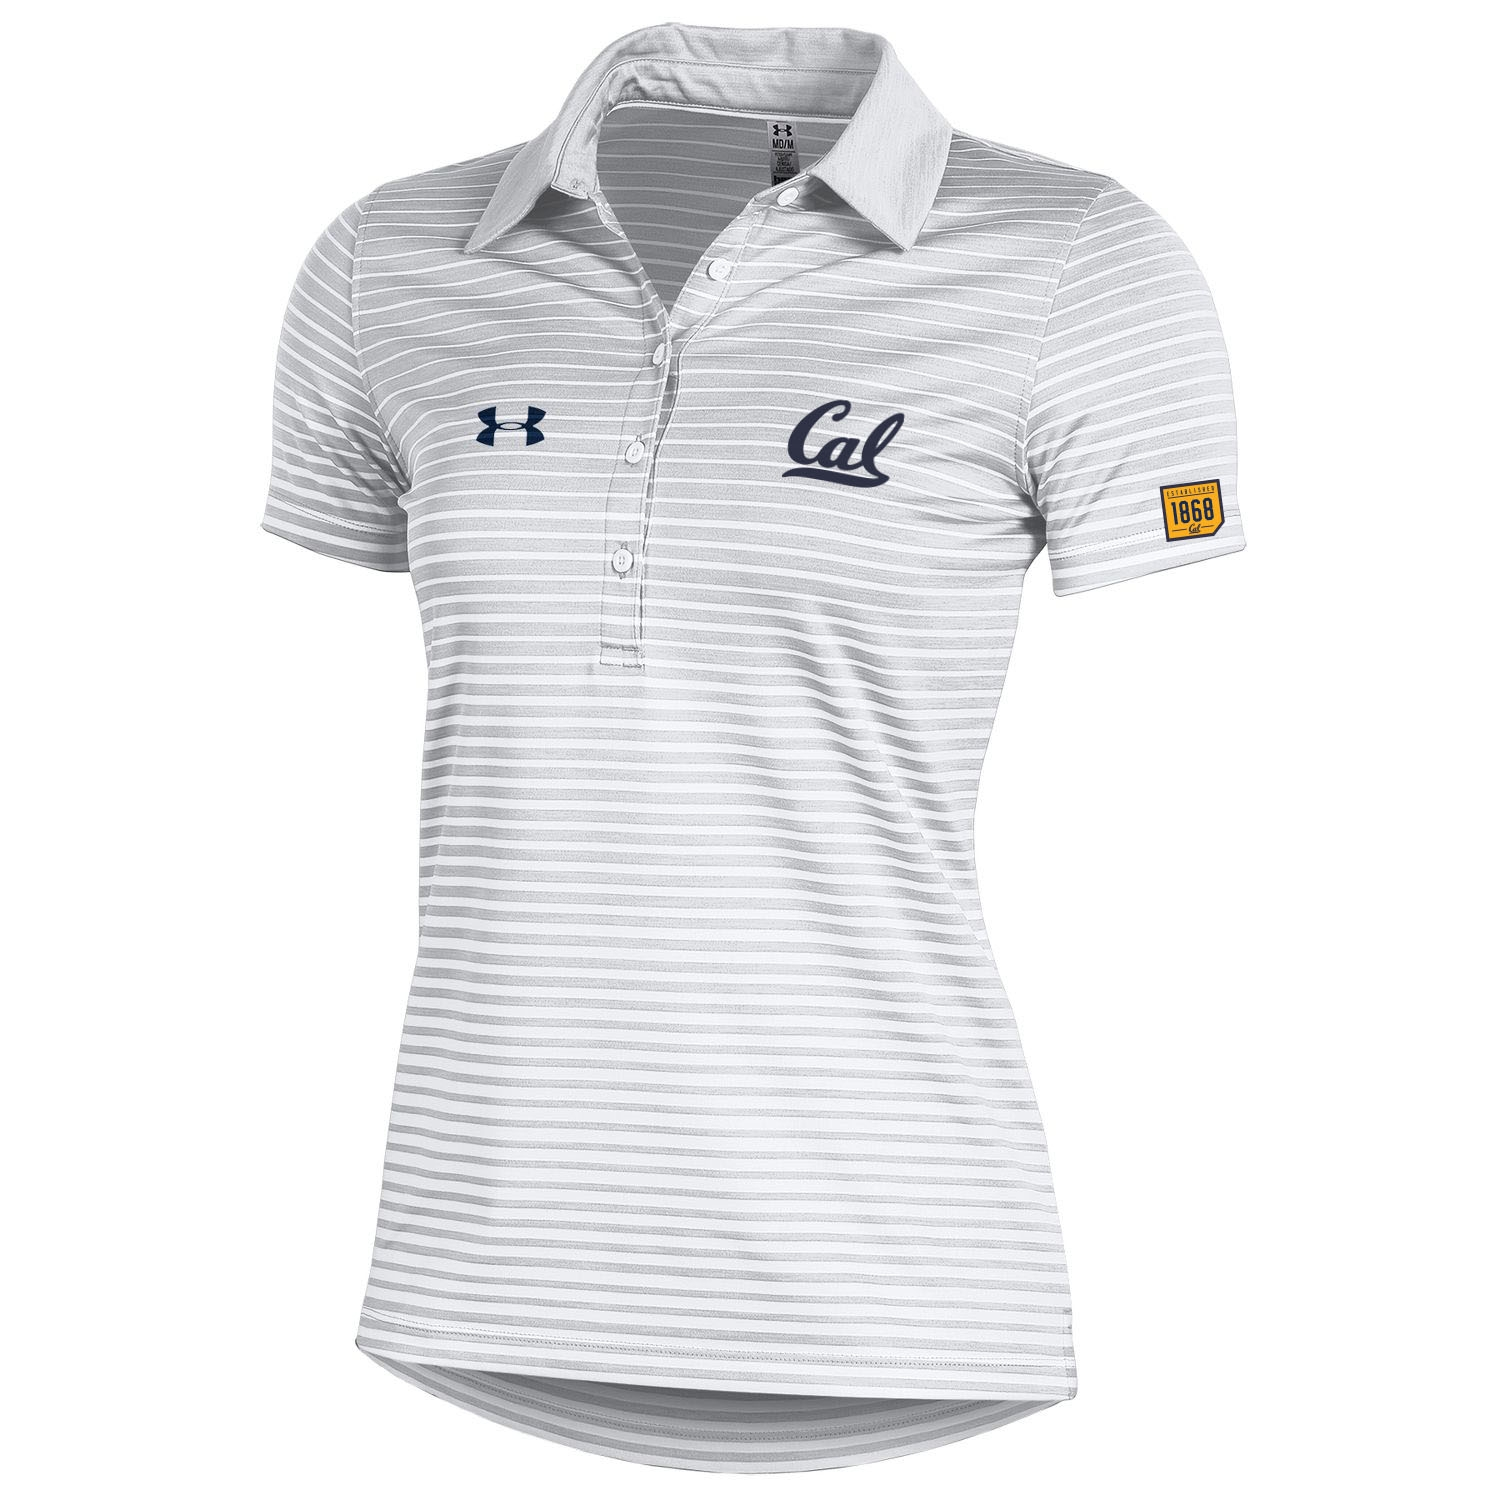 University of California Berkeley Under Armour Women's Trajectory Polo